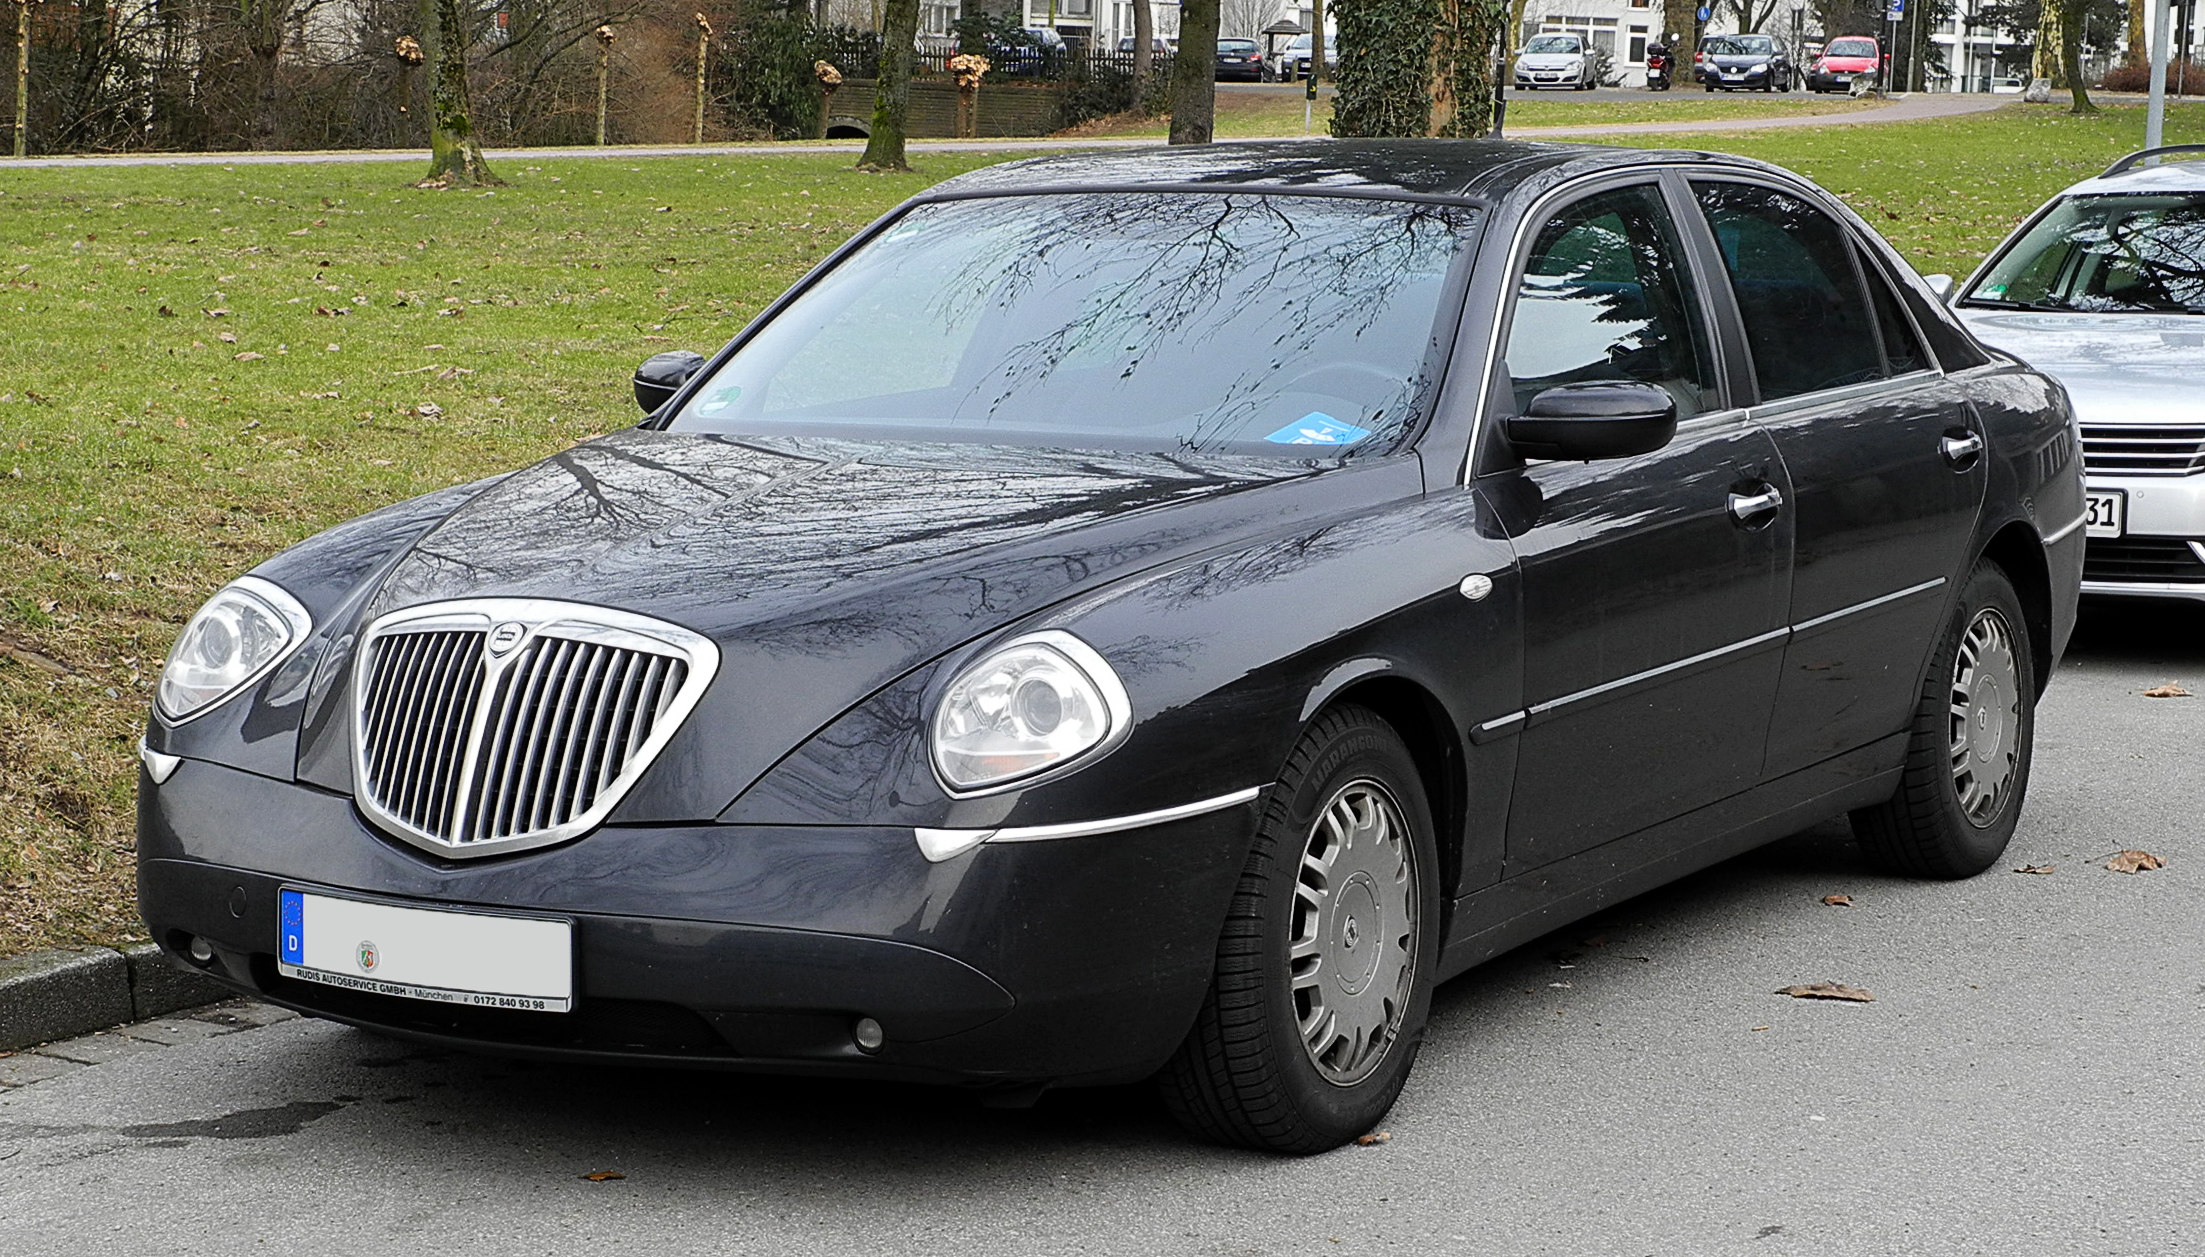 pictures lancia thesis The lancia thesis is an italian executive car with leather interior by/20 the lancia thesis is an italian executive car with leather interior sleek lancia thesis being viewed by many admirers by/20 sleek lancia thesis being viewed by many admirers.